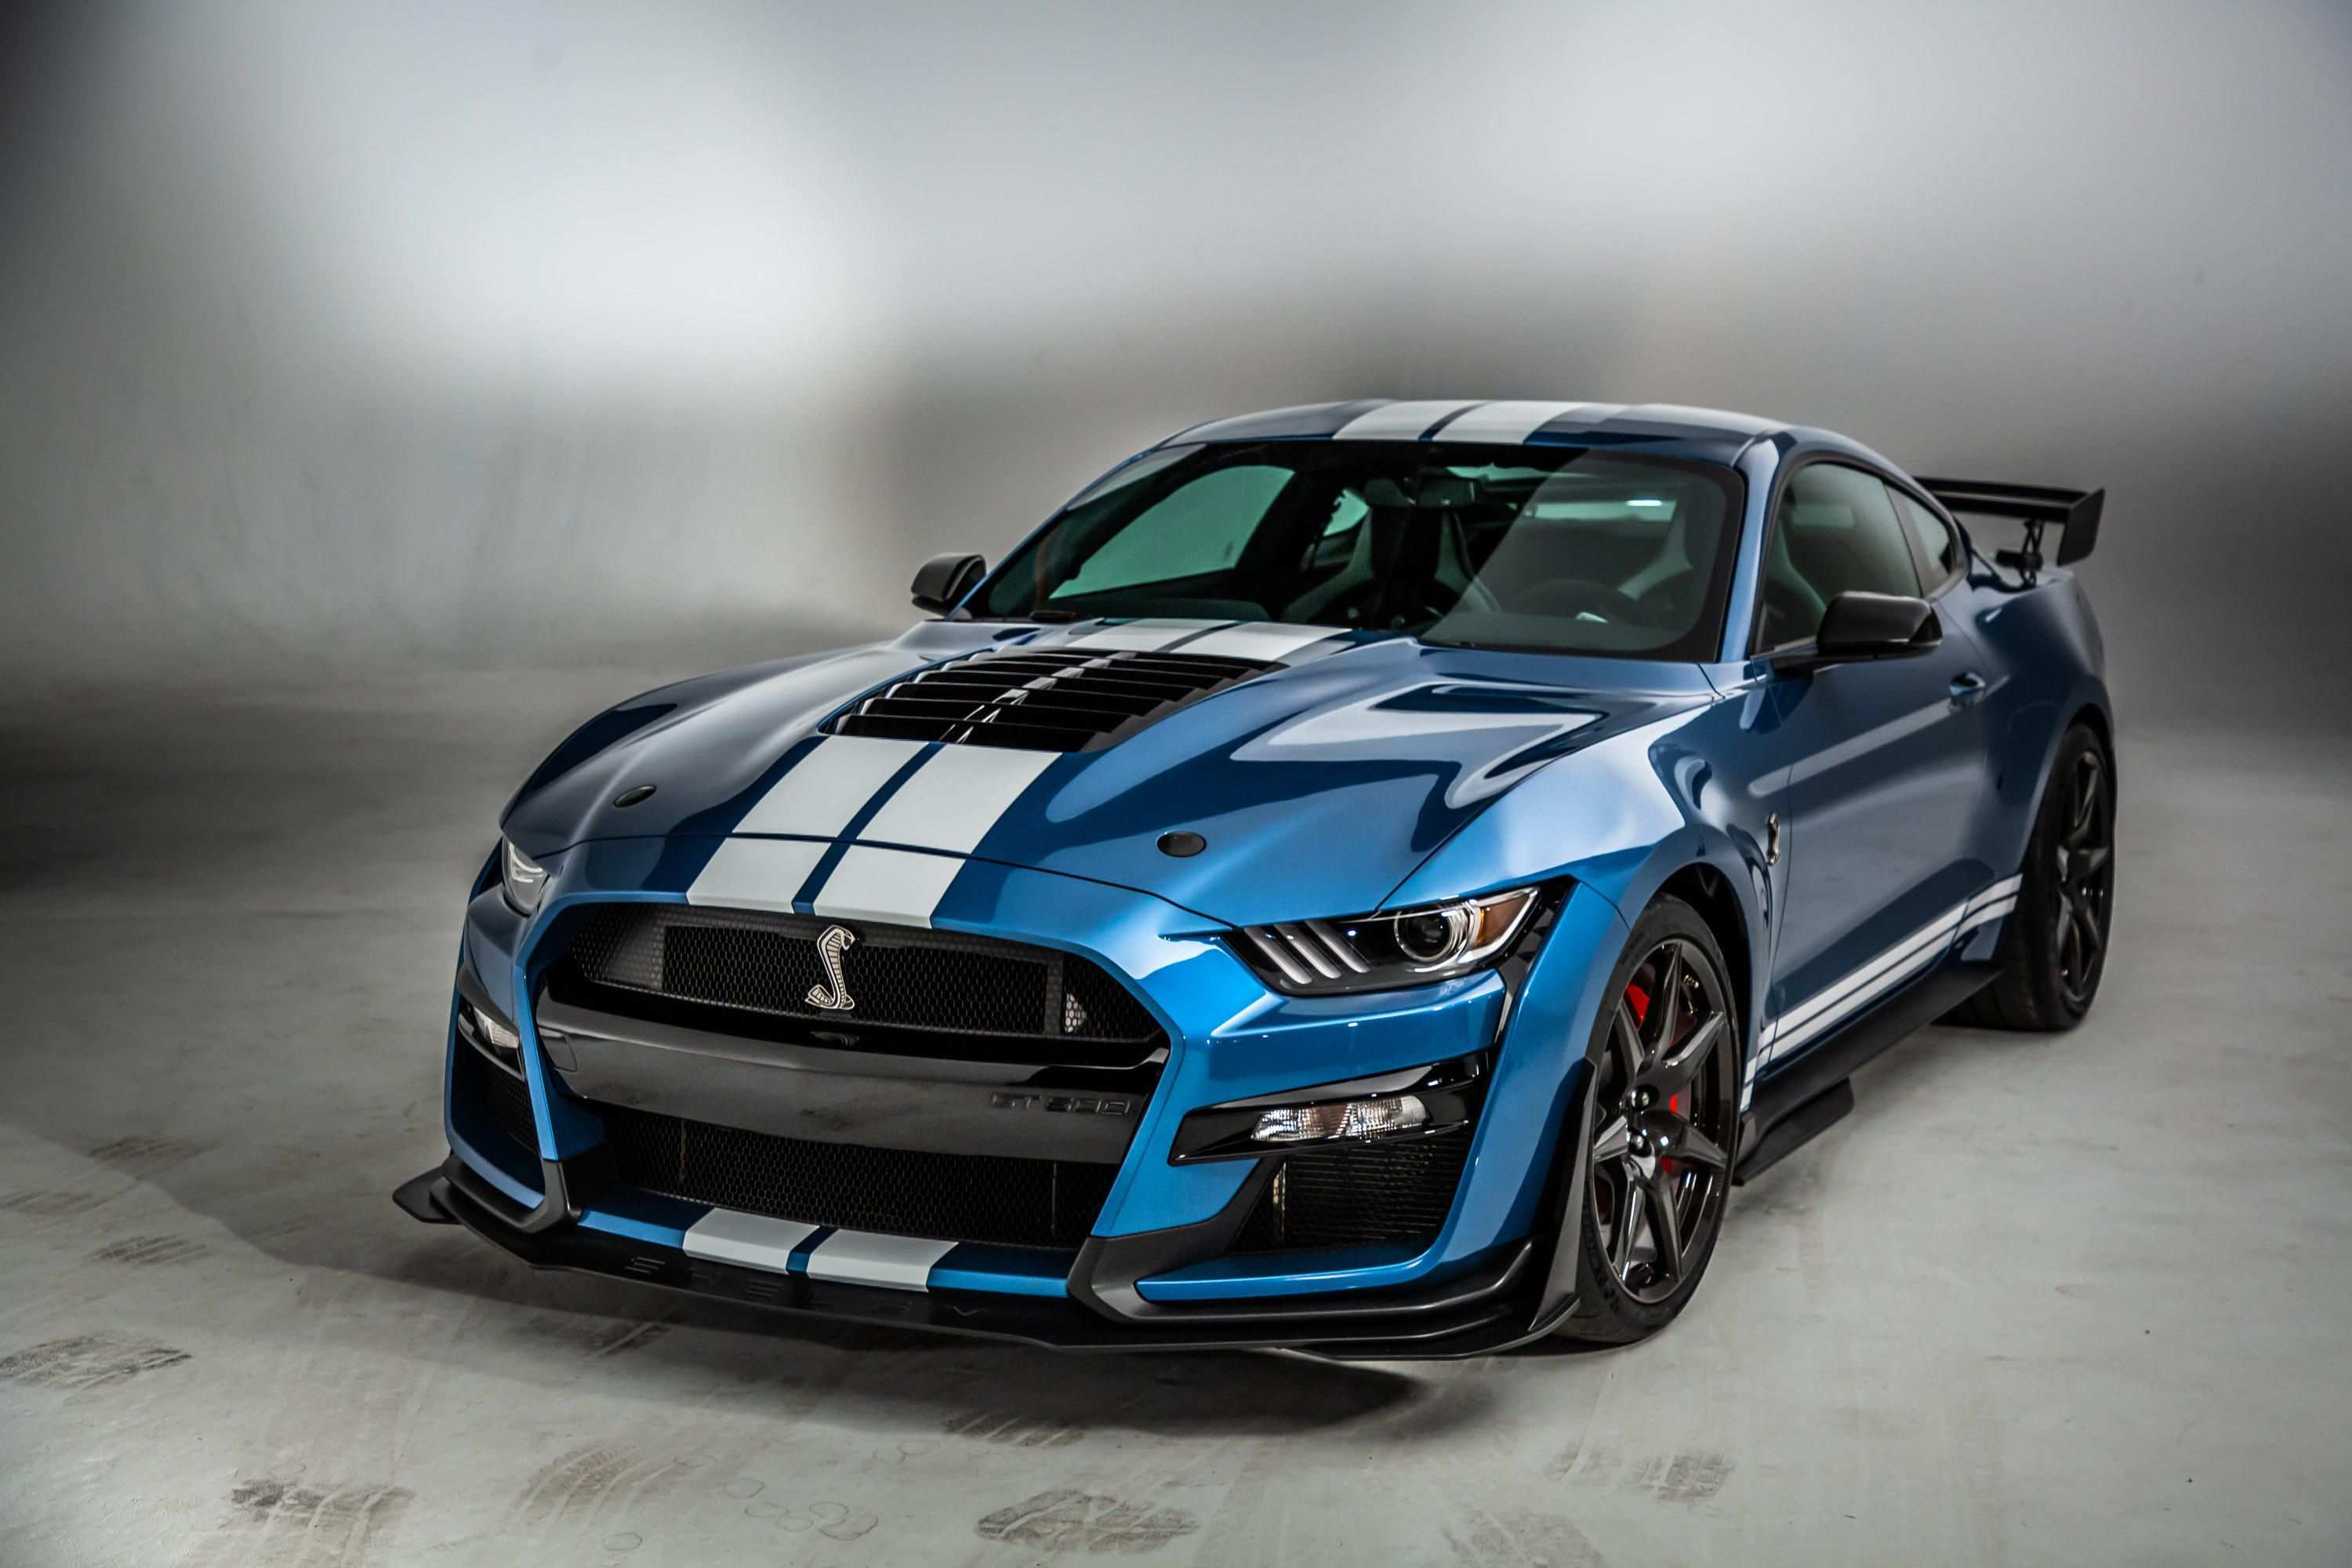 70 The Best Ford Mustang 2020 Gt500 Review